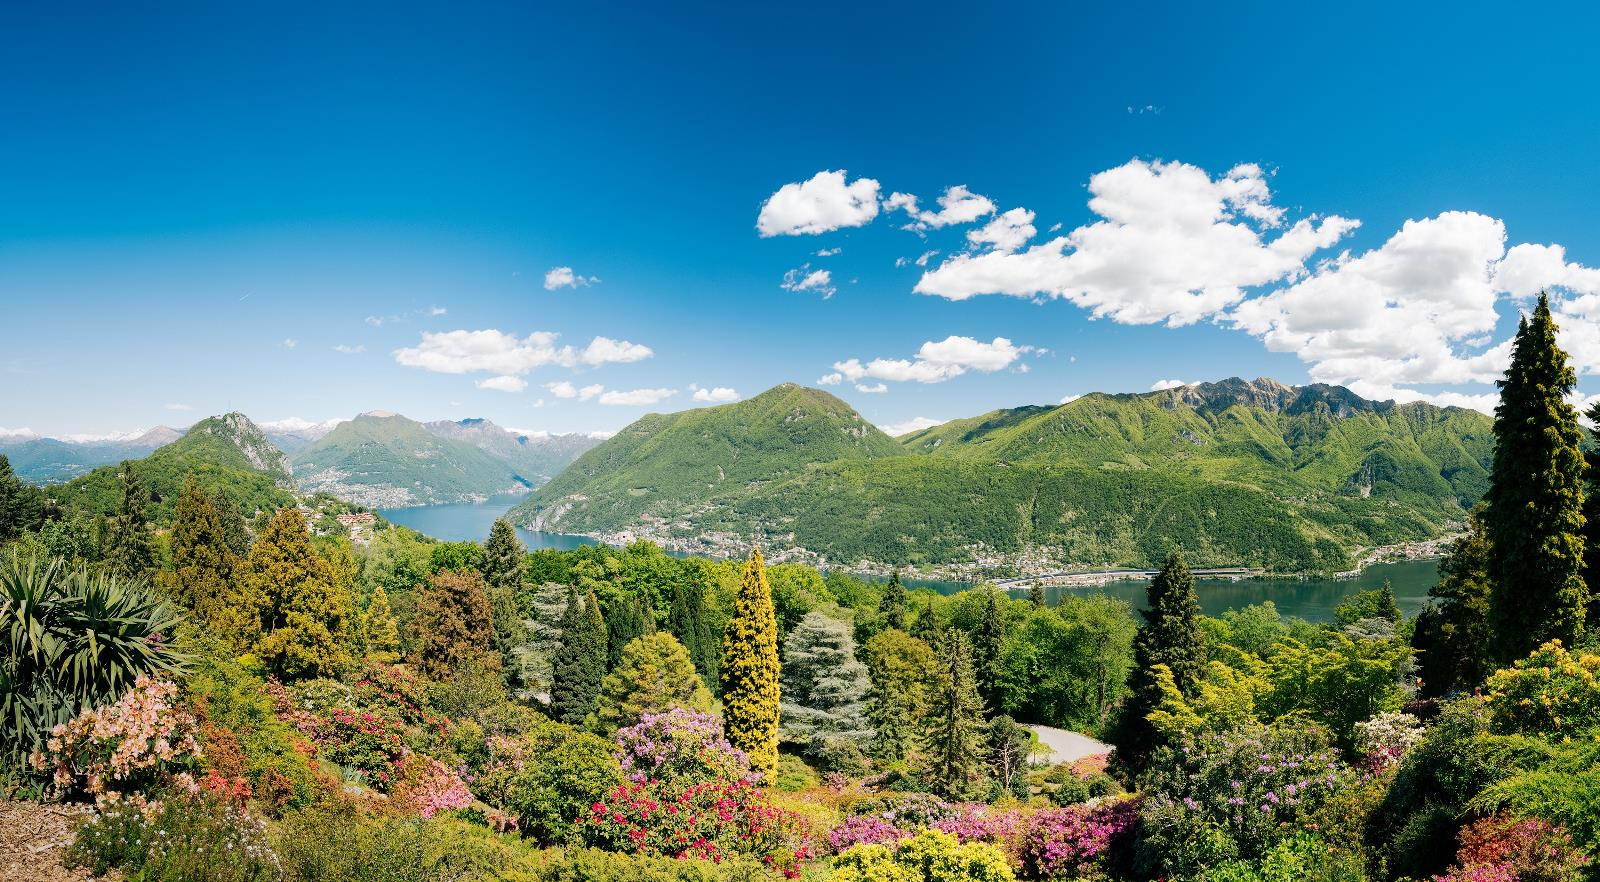 Lake and nature, View of the Lake Lugano from Parco San Grato above Carona